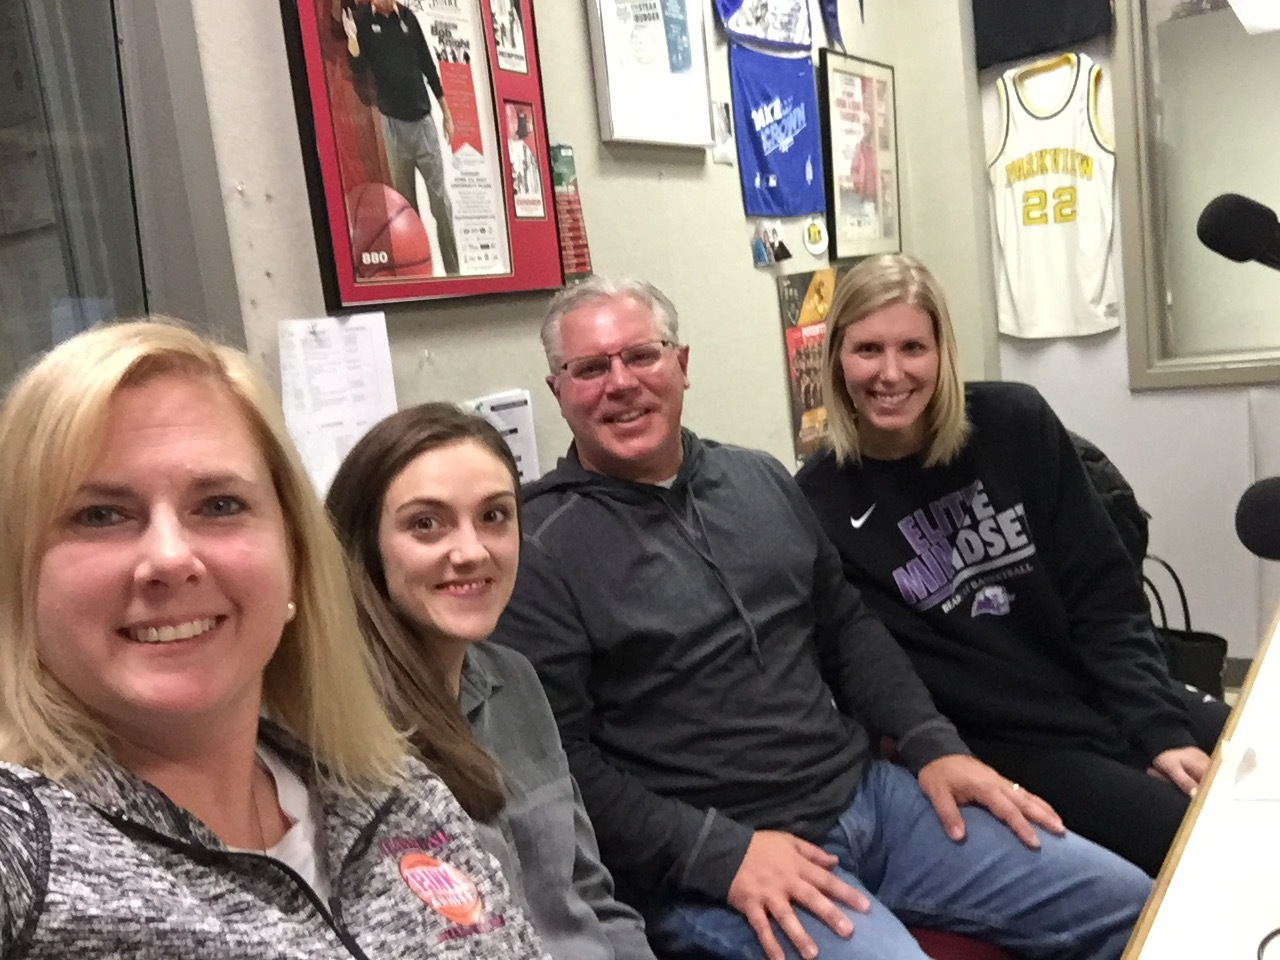 Coaches Caira Dortch, Chuck Hepola, and Kelsey Keizer